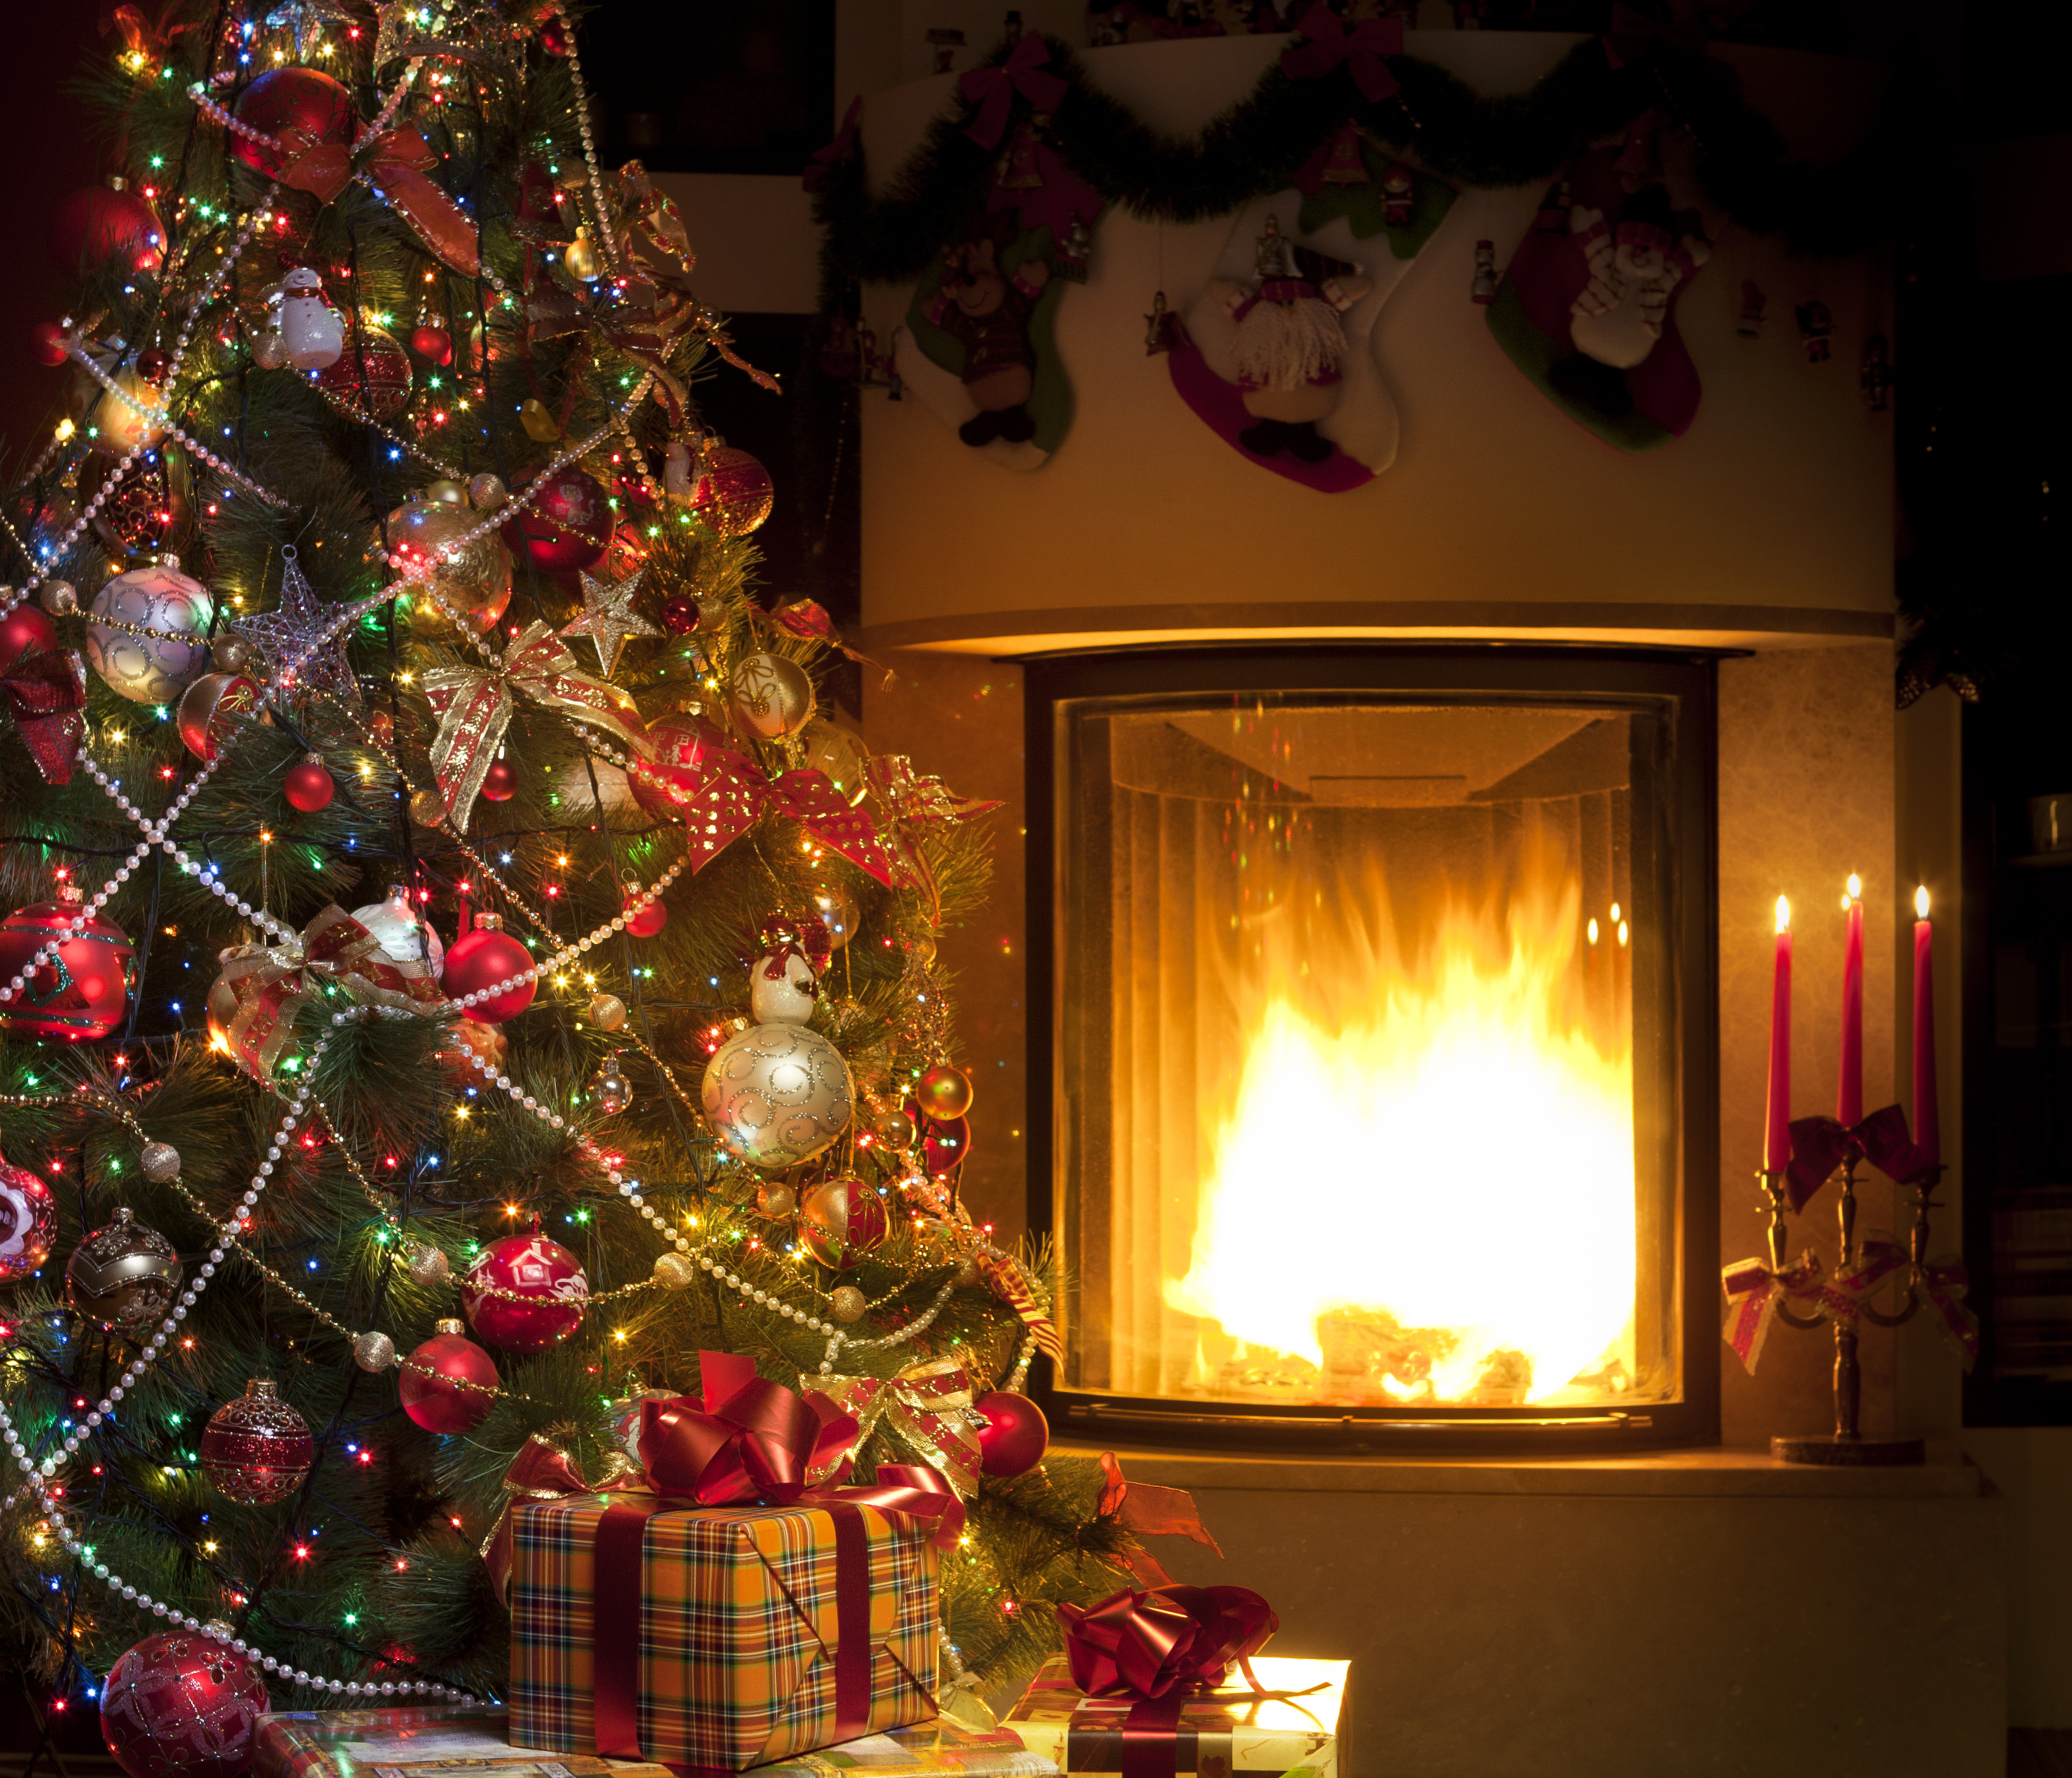 175 Fireplace HD Wallpapers Background Images 5590x4796